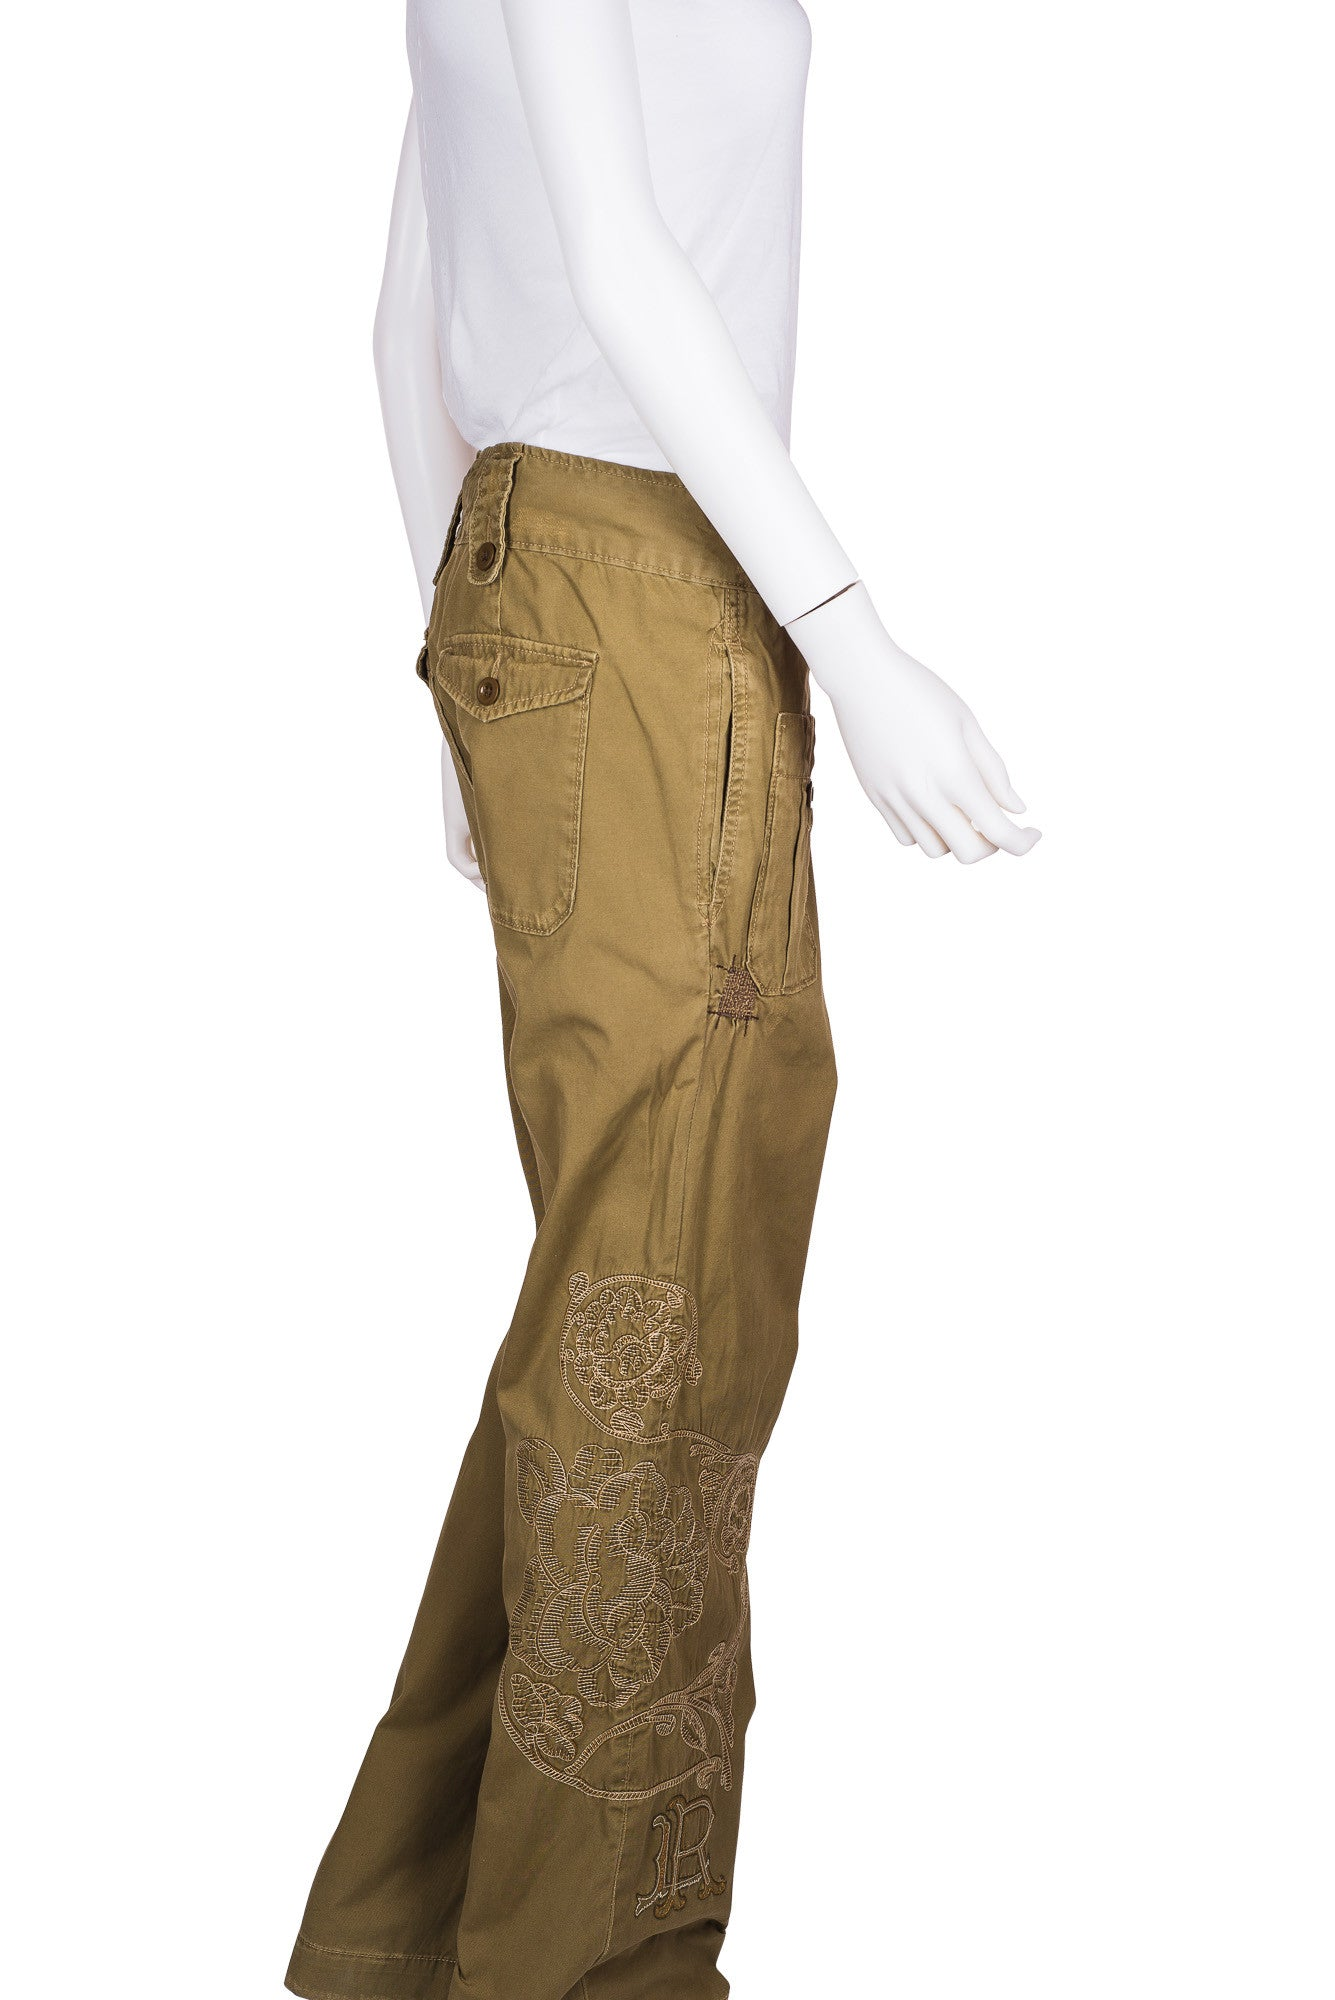 RALPH LAUREN Distressed Embroidered Cargo Pants